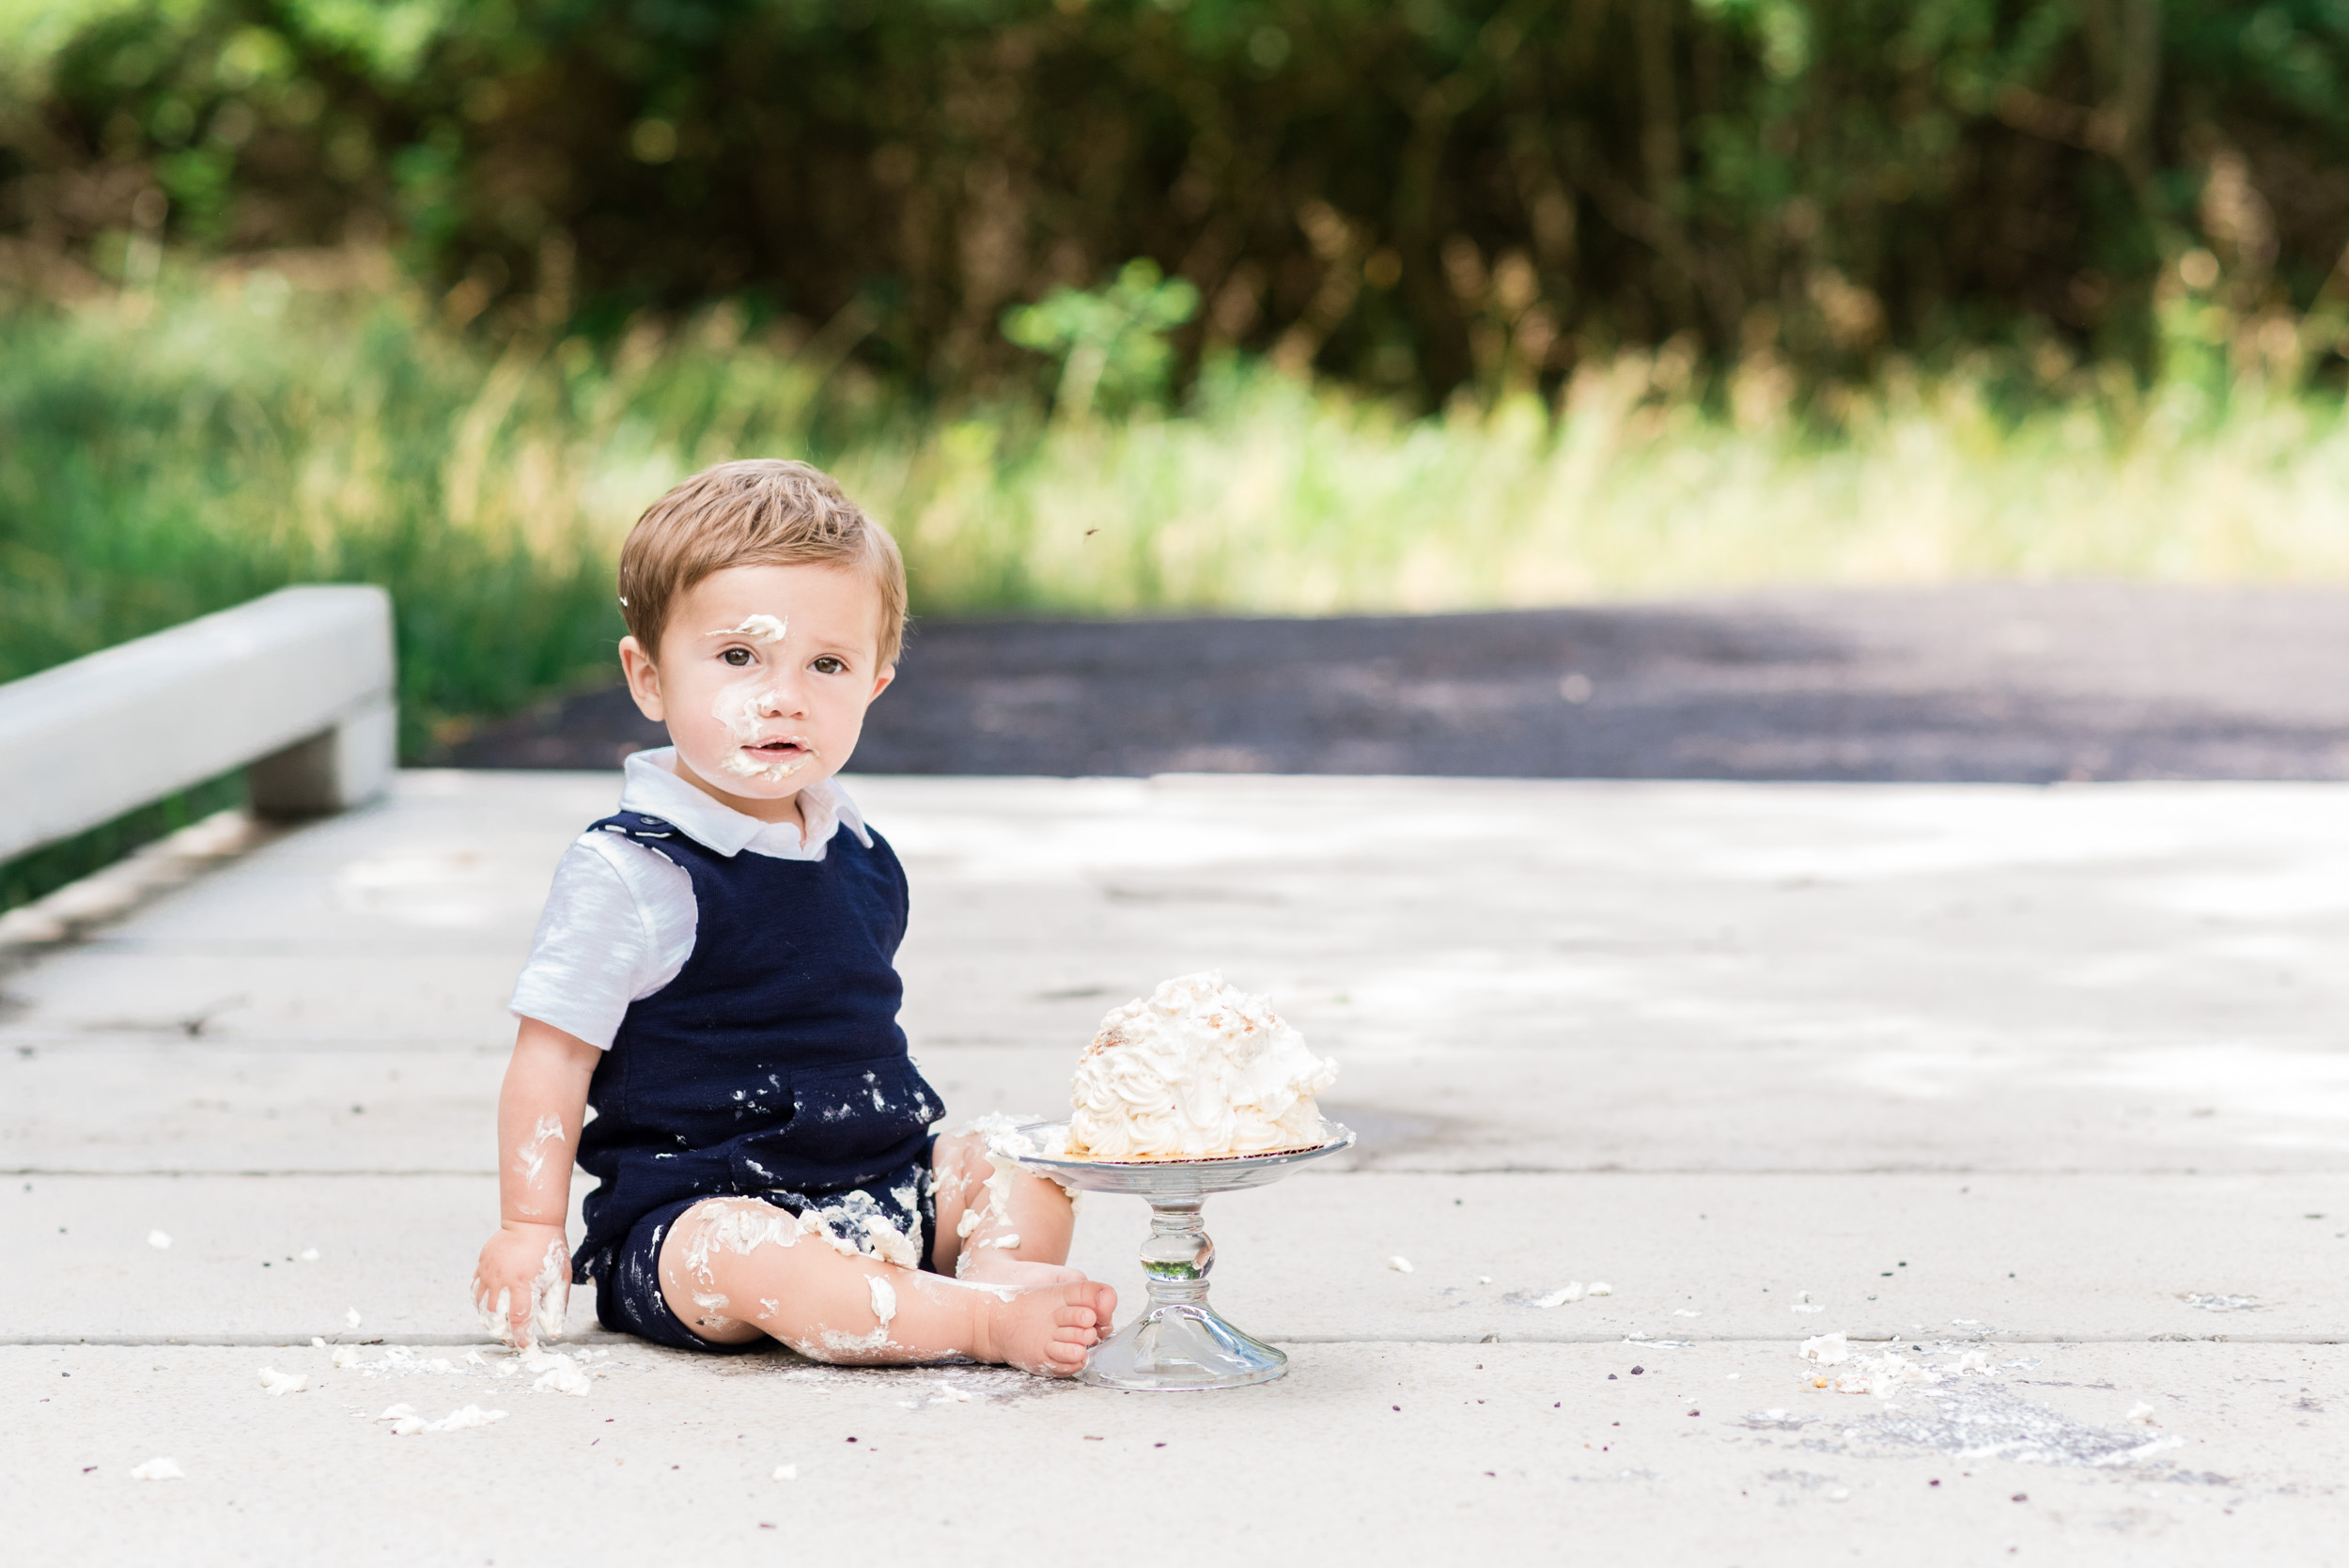 montgomery county pa cake smash one year old session